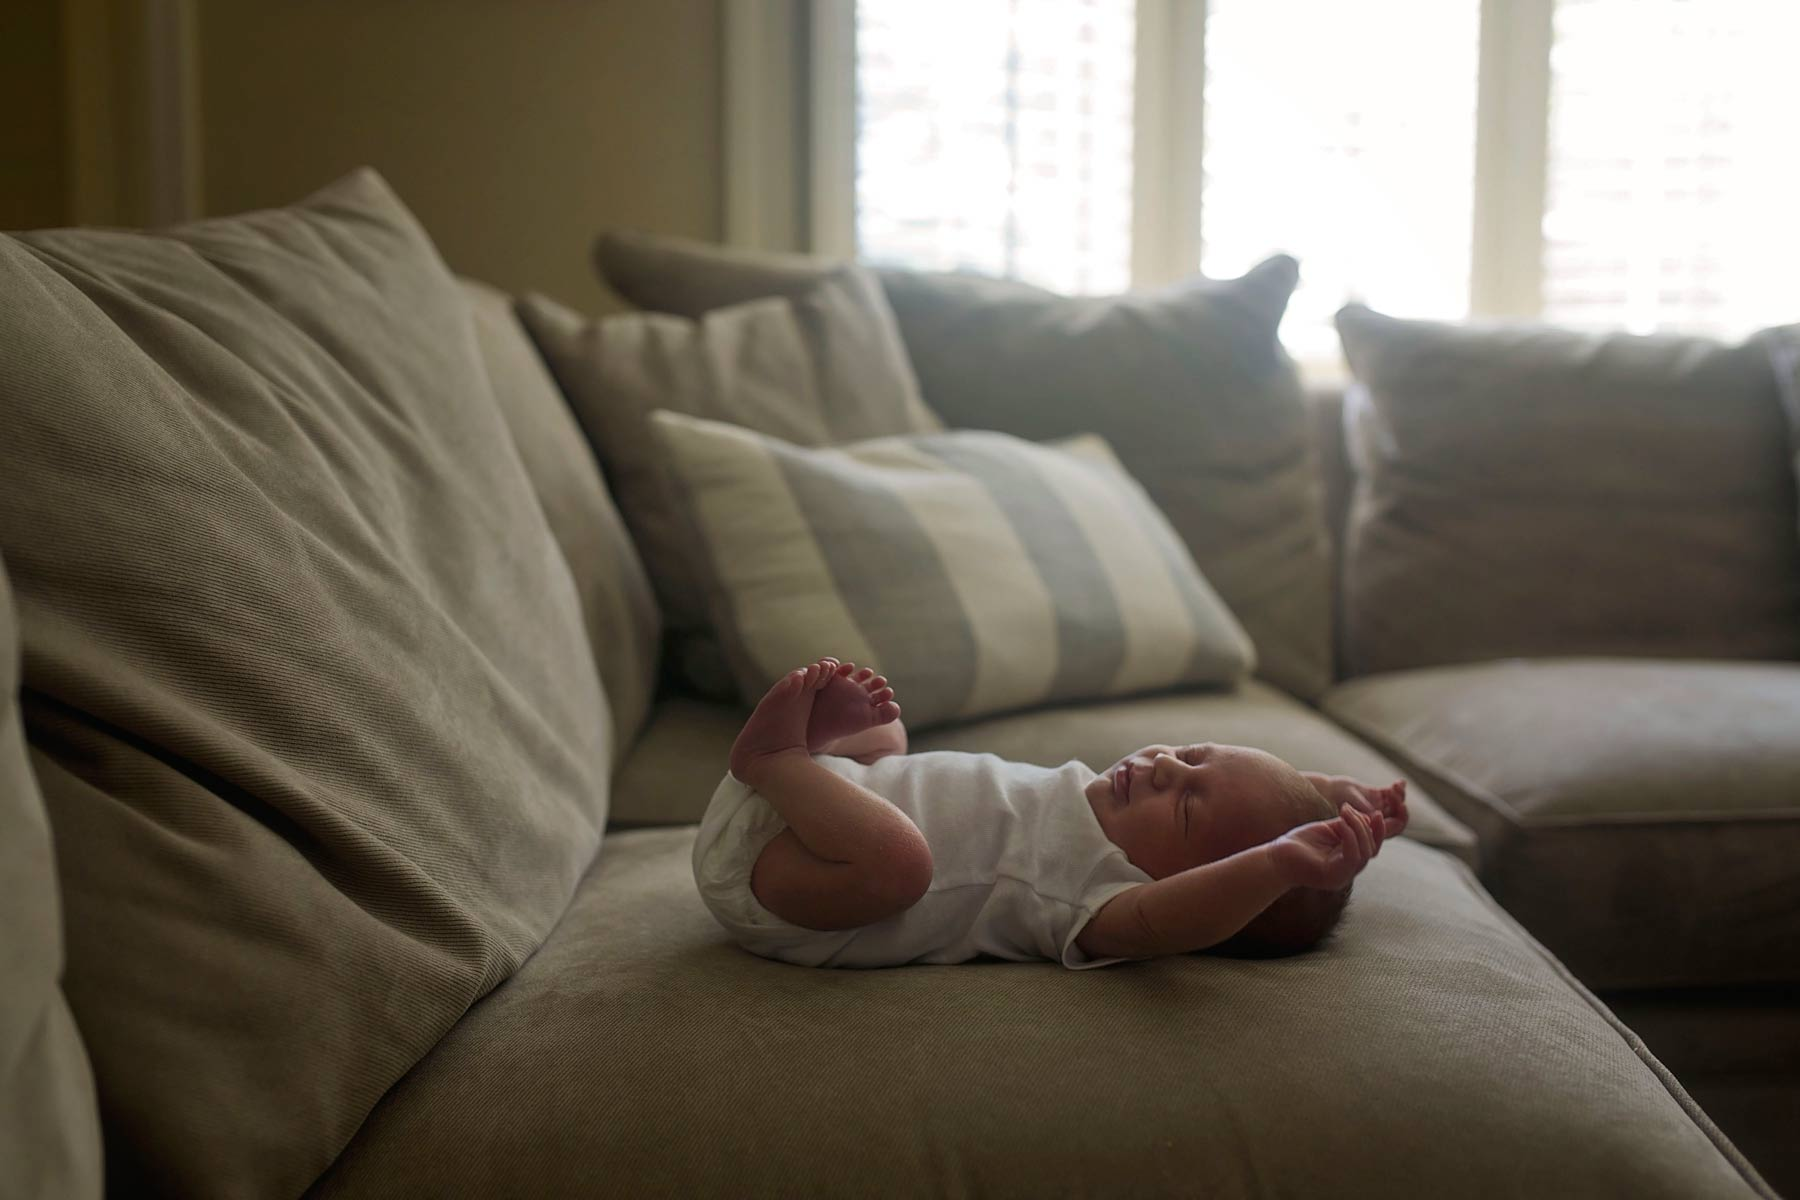 Main_Line_Newborn_photographer_Lifestyle_newborn_photographer16_baby_stretches_arms.JPG